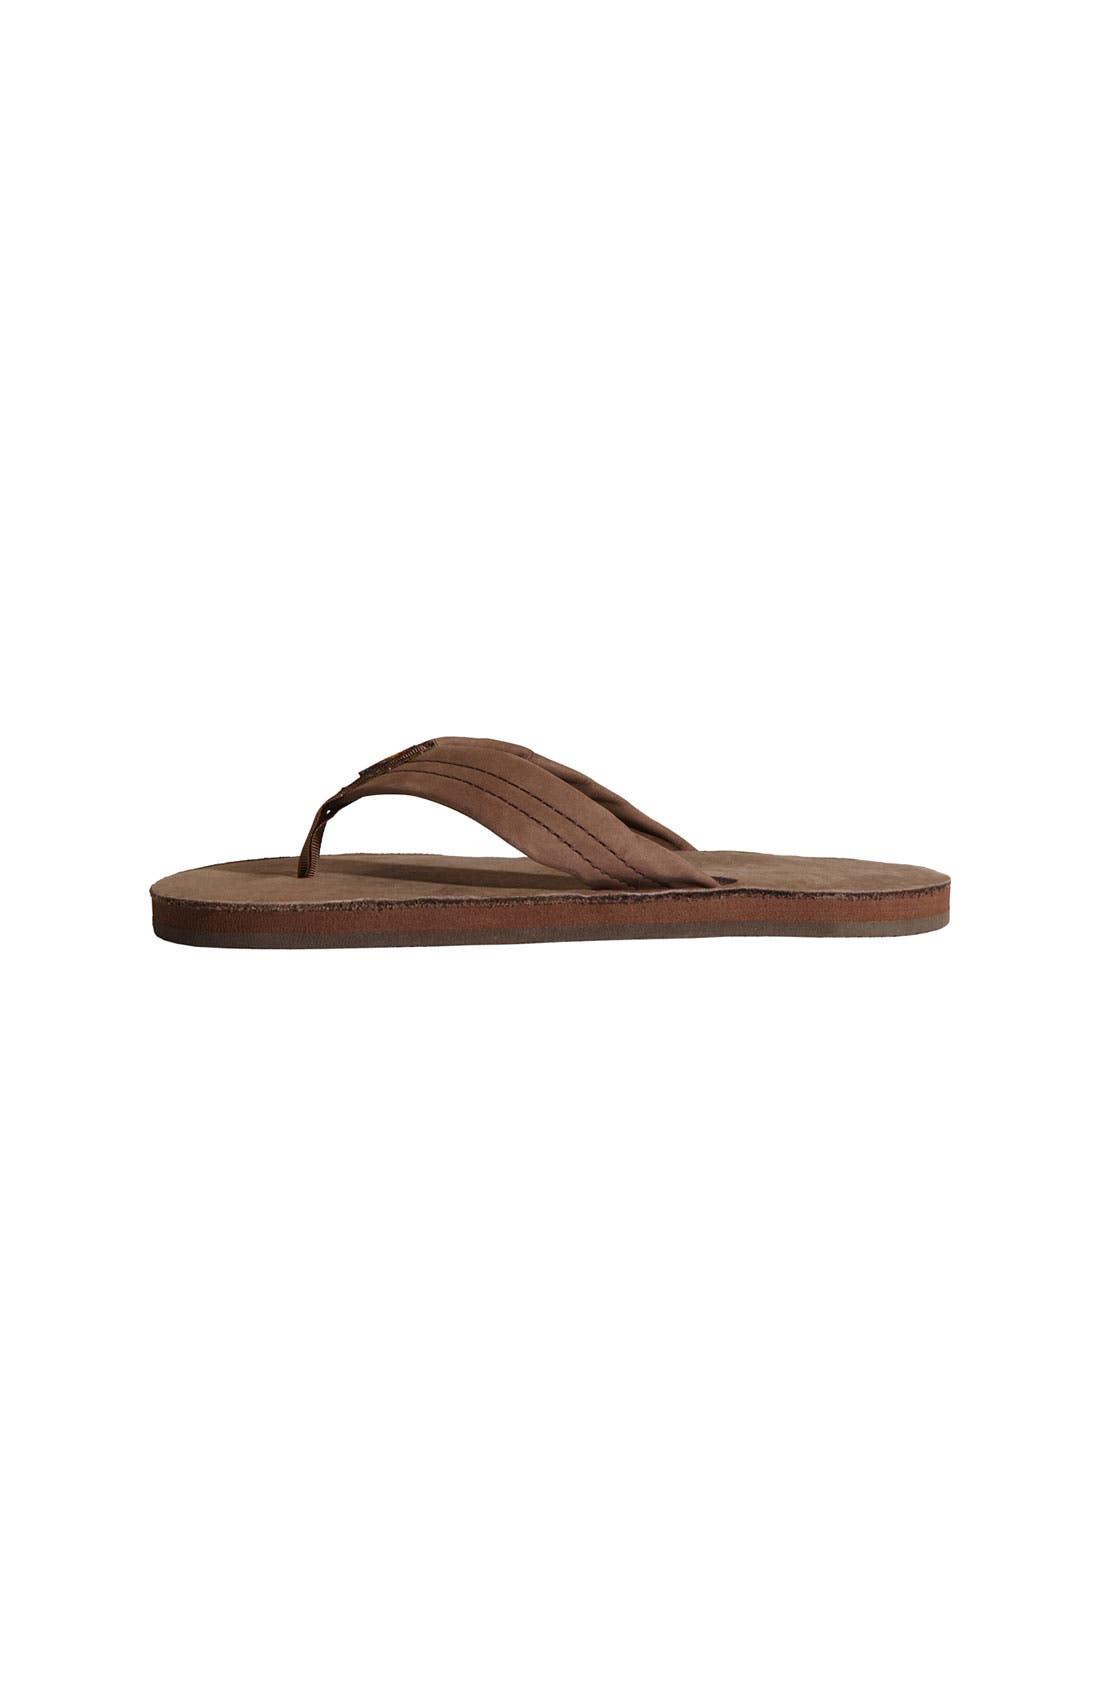 Leather Sandal,                             Alternate thumbnail 9, color,                             EXPRESSO